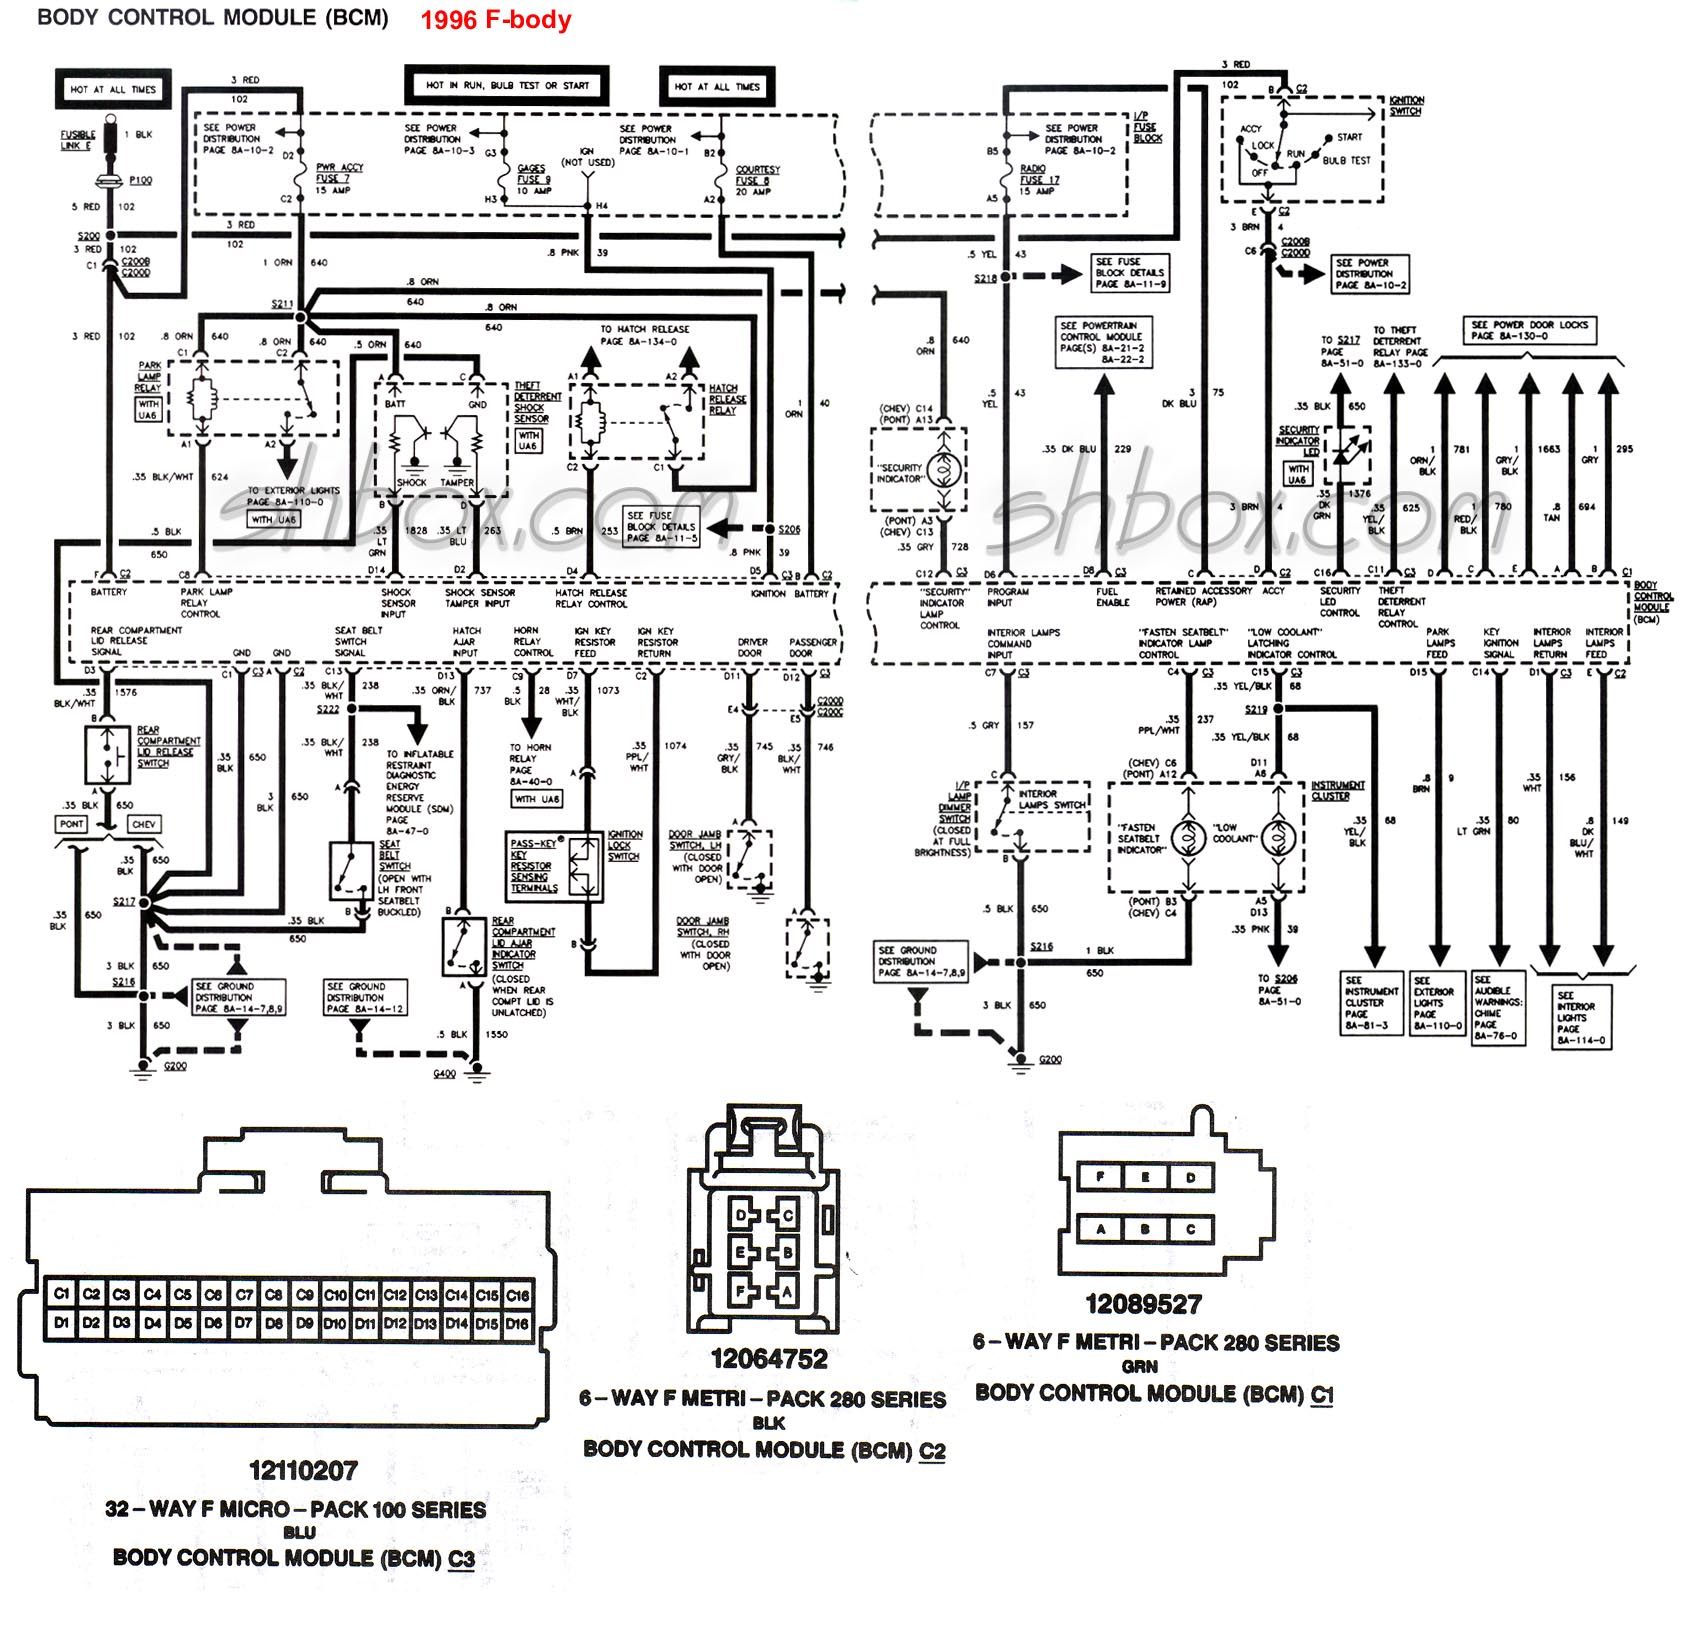 2003 Chevy Silverado Bcm Wiring Diagram : Chevy colorado bcm wiring diagram get free image about